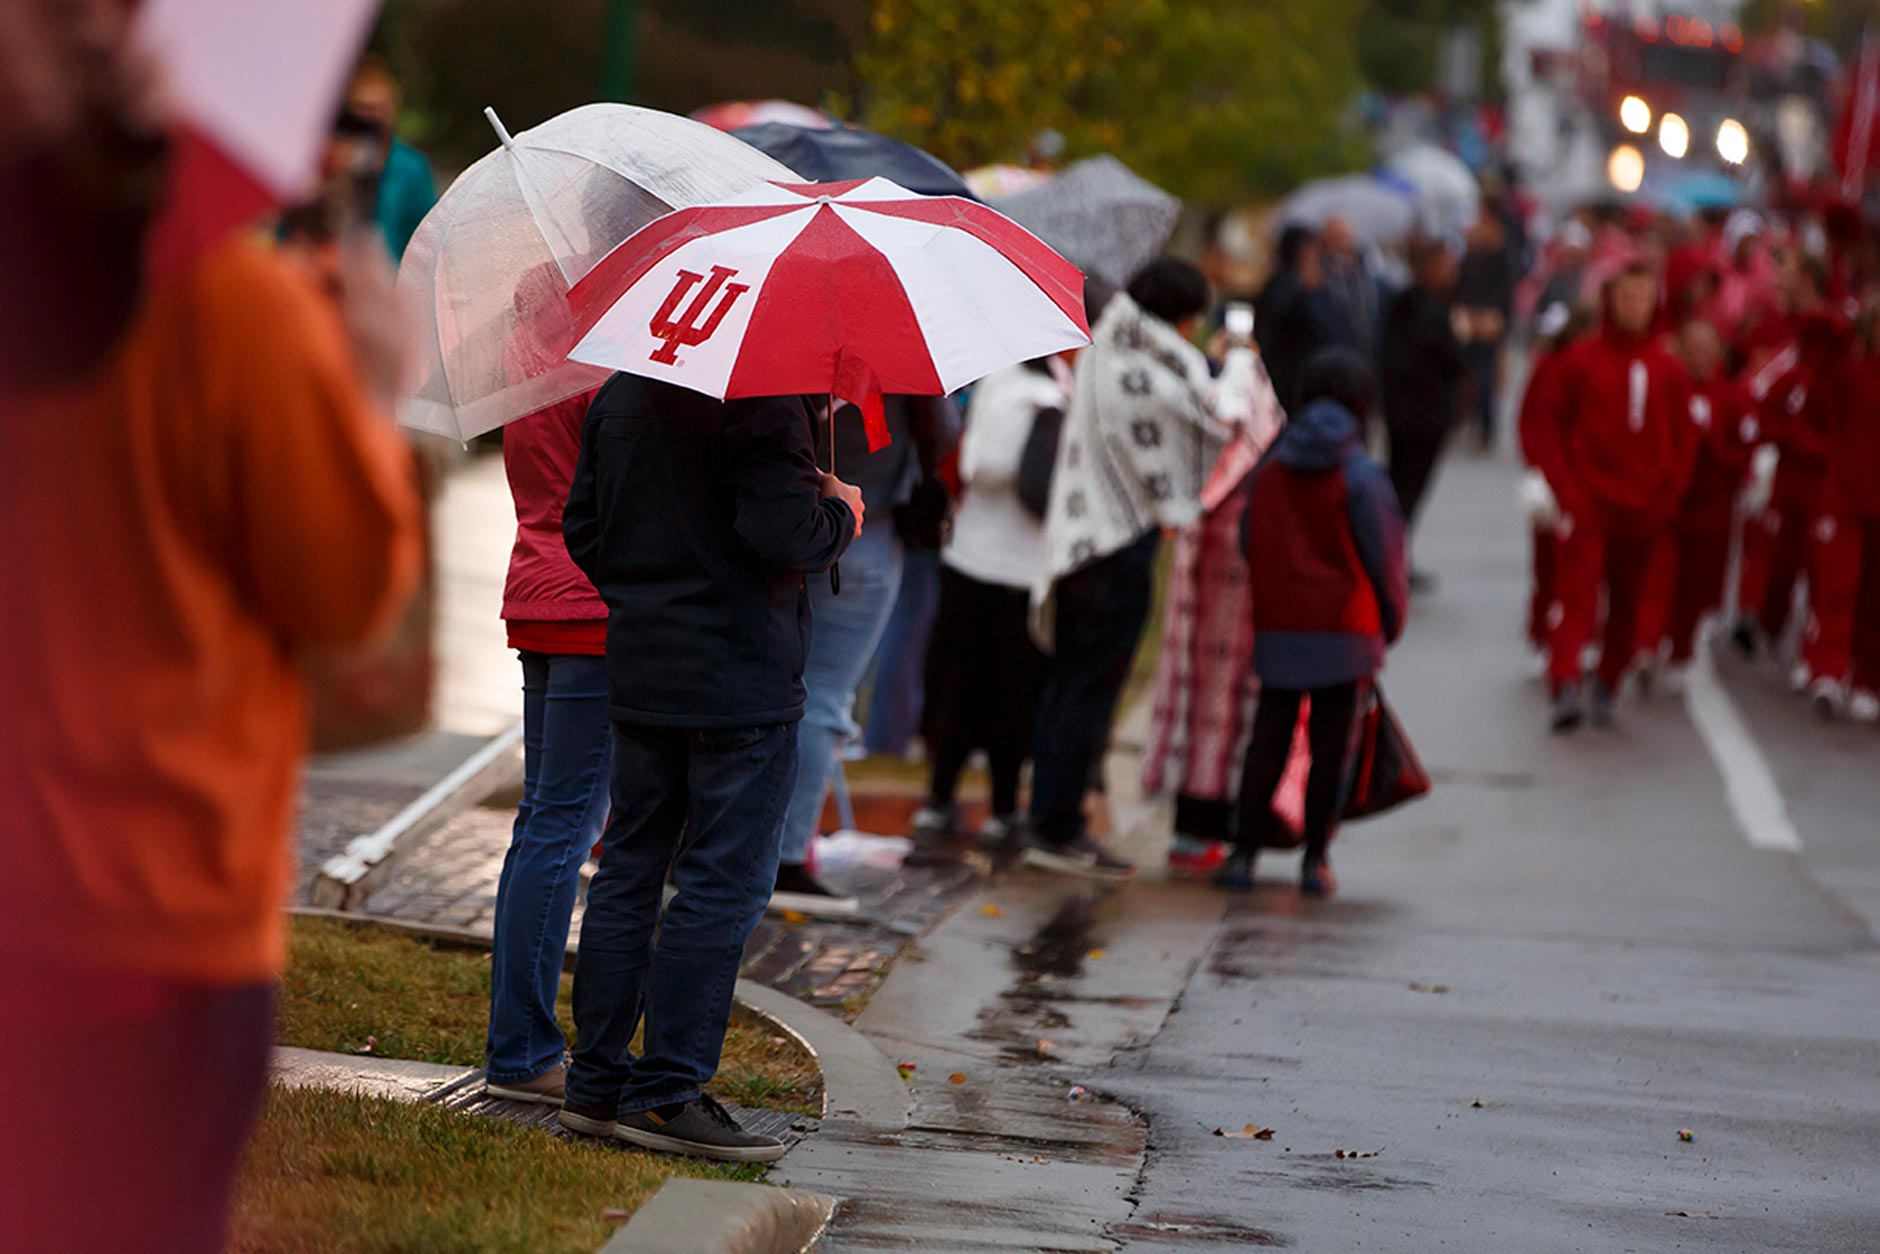 An IU umbrella shields a parade goer from the rain along Woodlawn Avenue during the IU Bloomington Homecoming Parade on Friday, Oct. 11, 2019. (James Brosher/Indiana University)